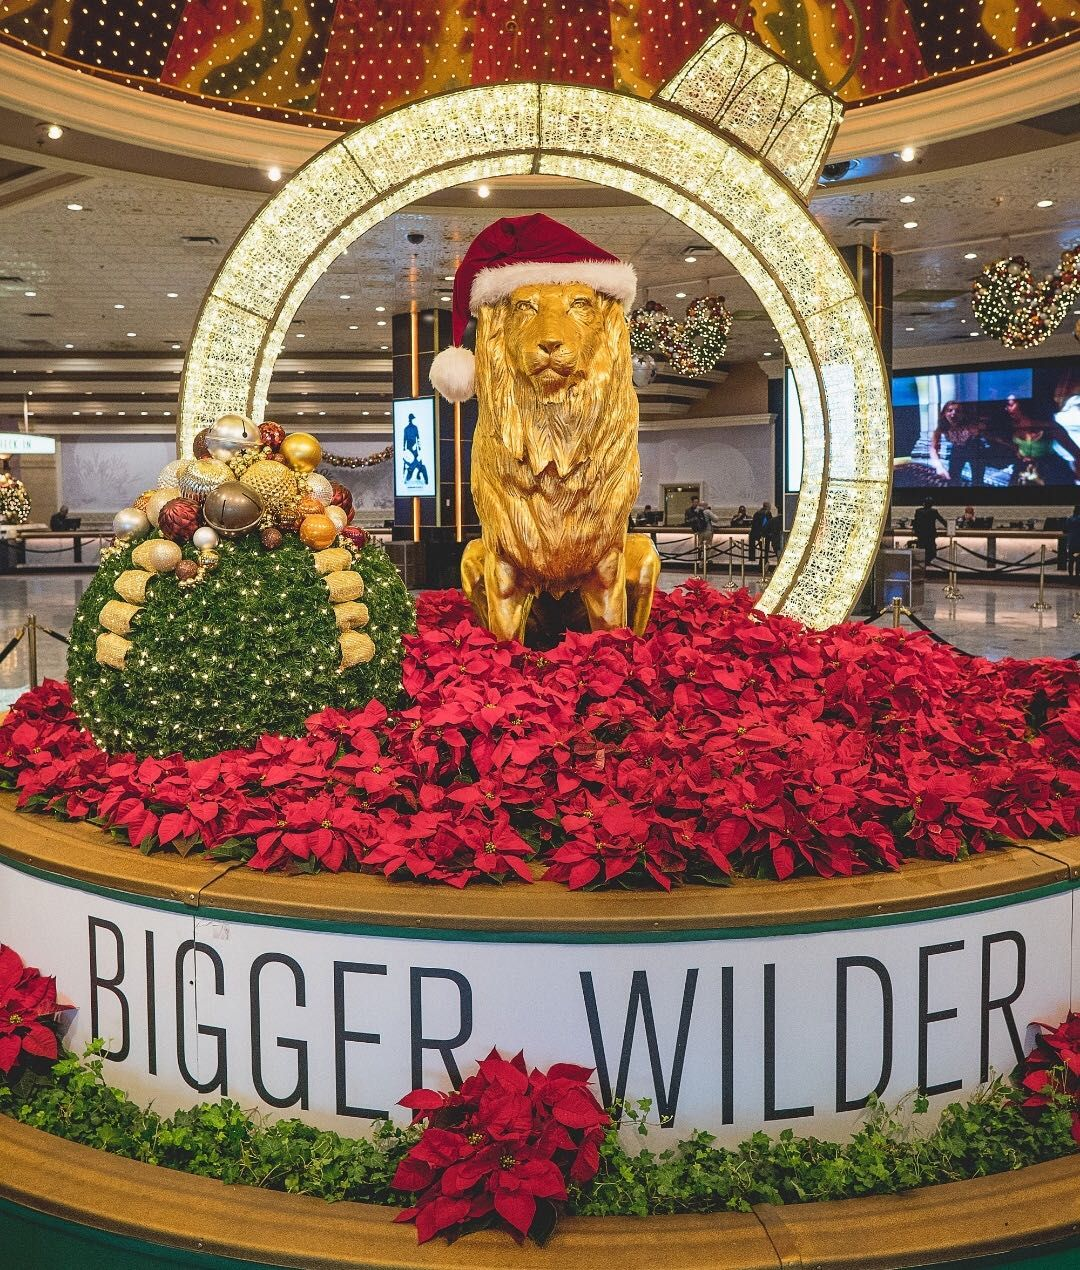 Mgm Grand Las Vegas Christmas Deal 2020 Christmas in Las Vegas would not be complete without MGM Grand's